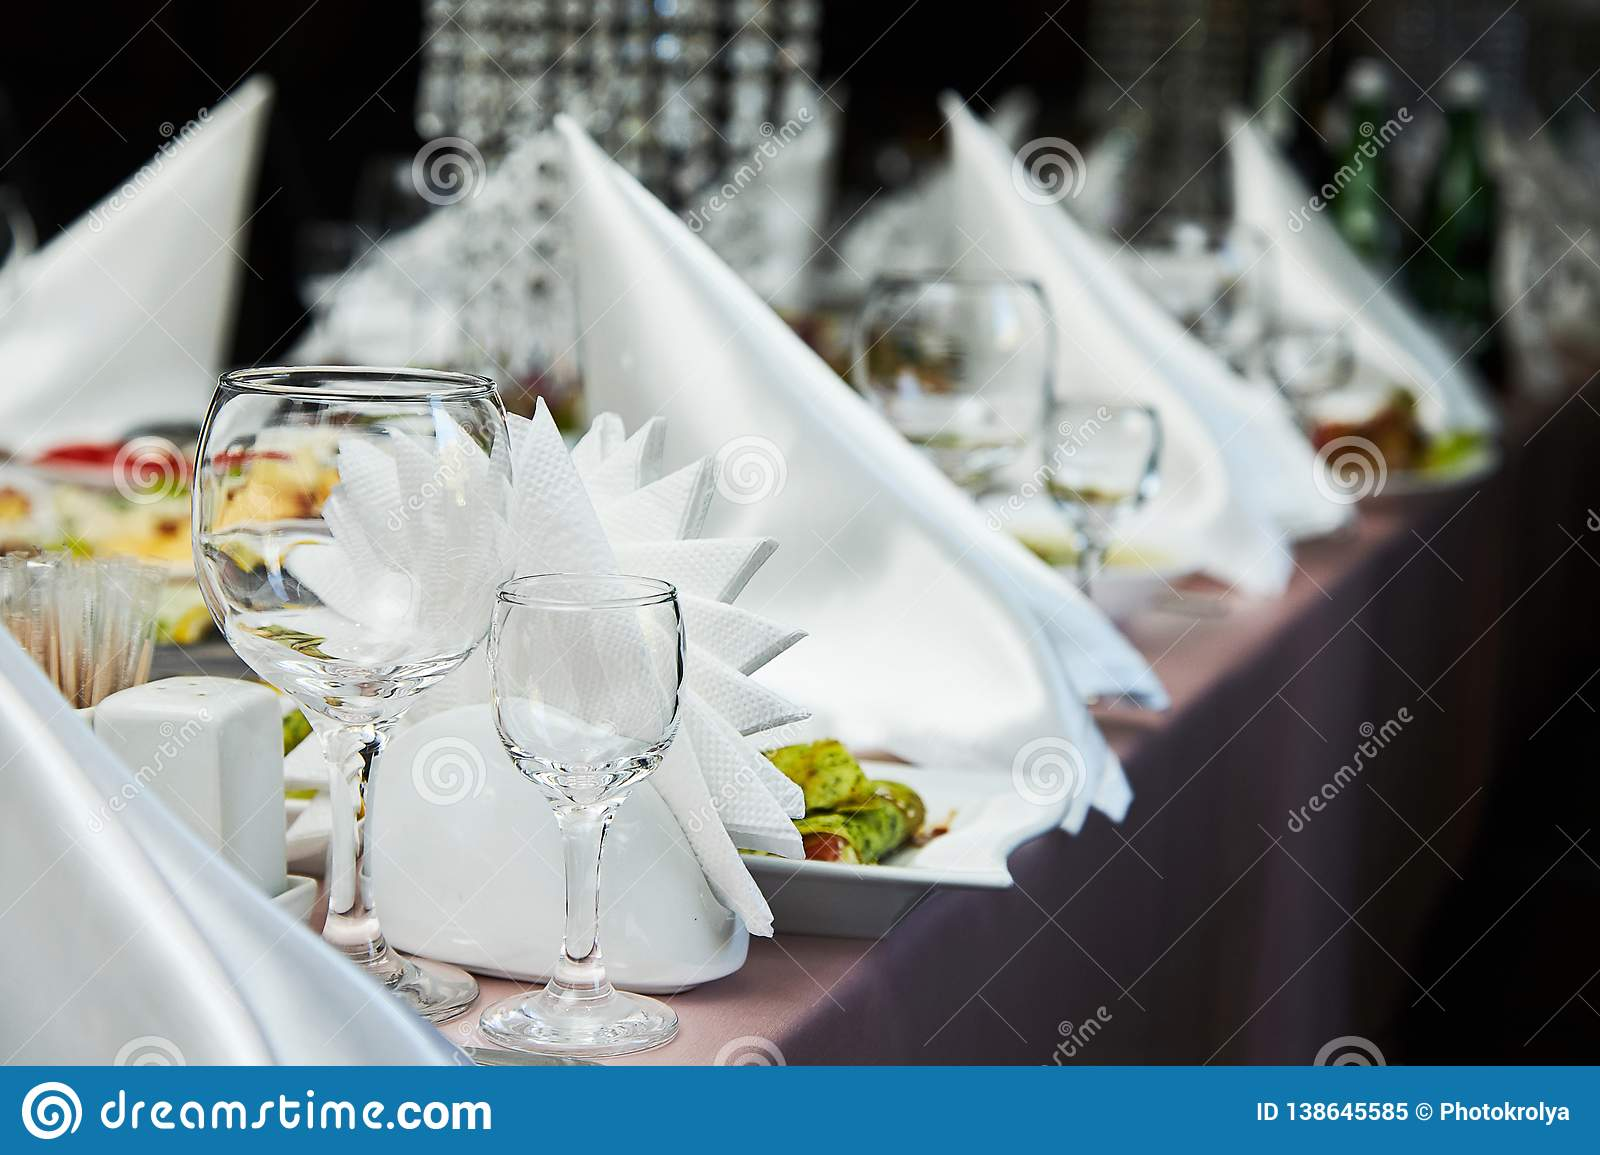 Restaurant table setting decor with glasses for wine. Different meals for the guests.